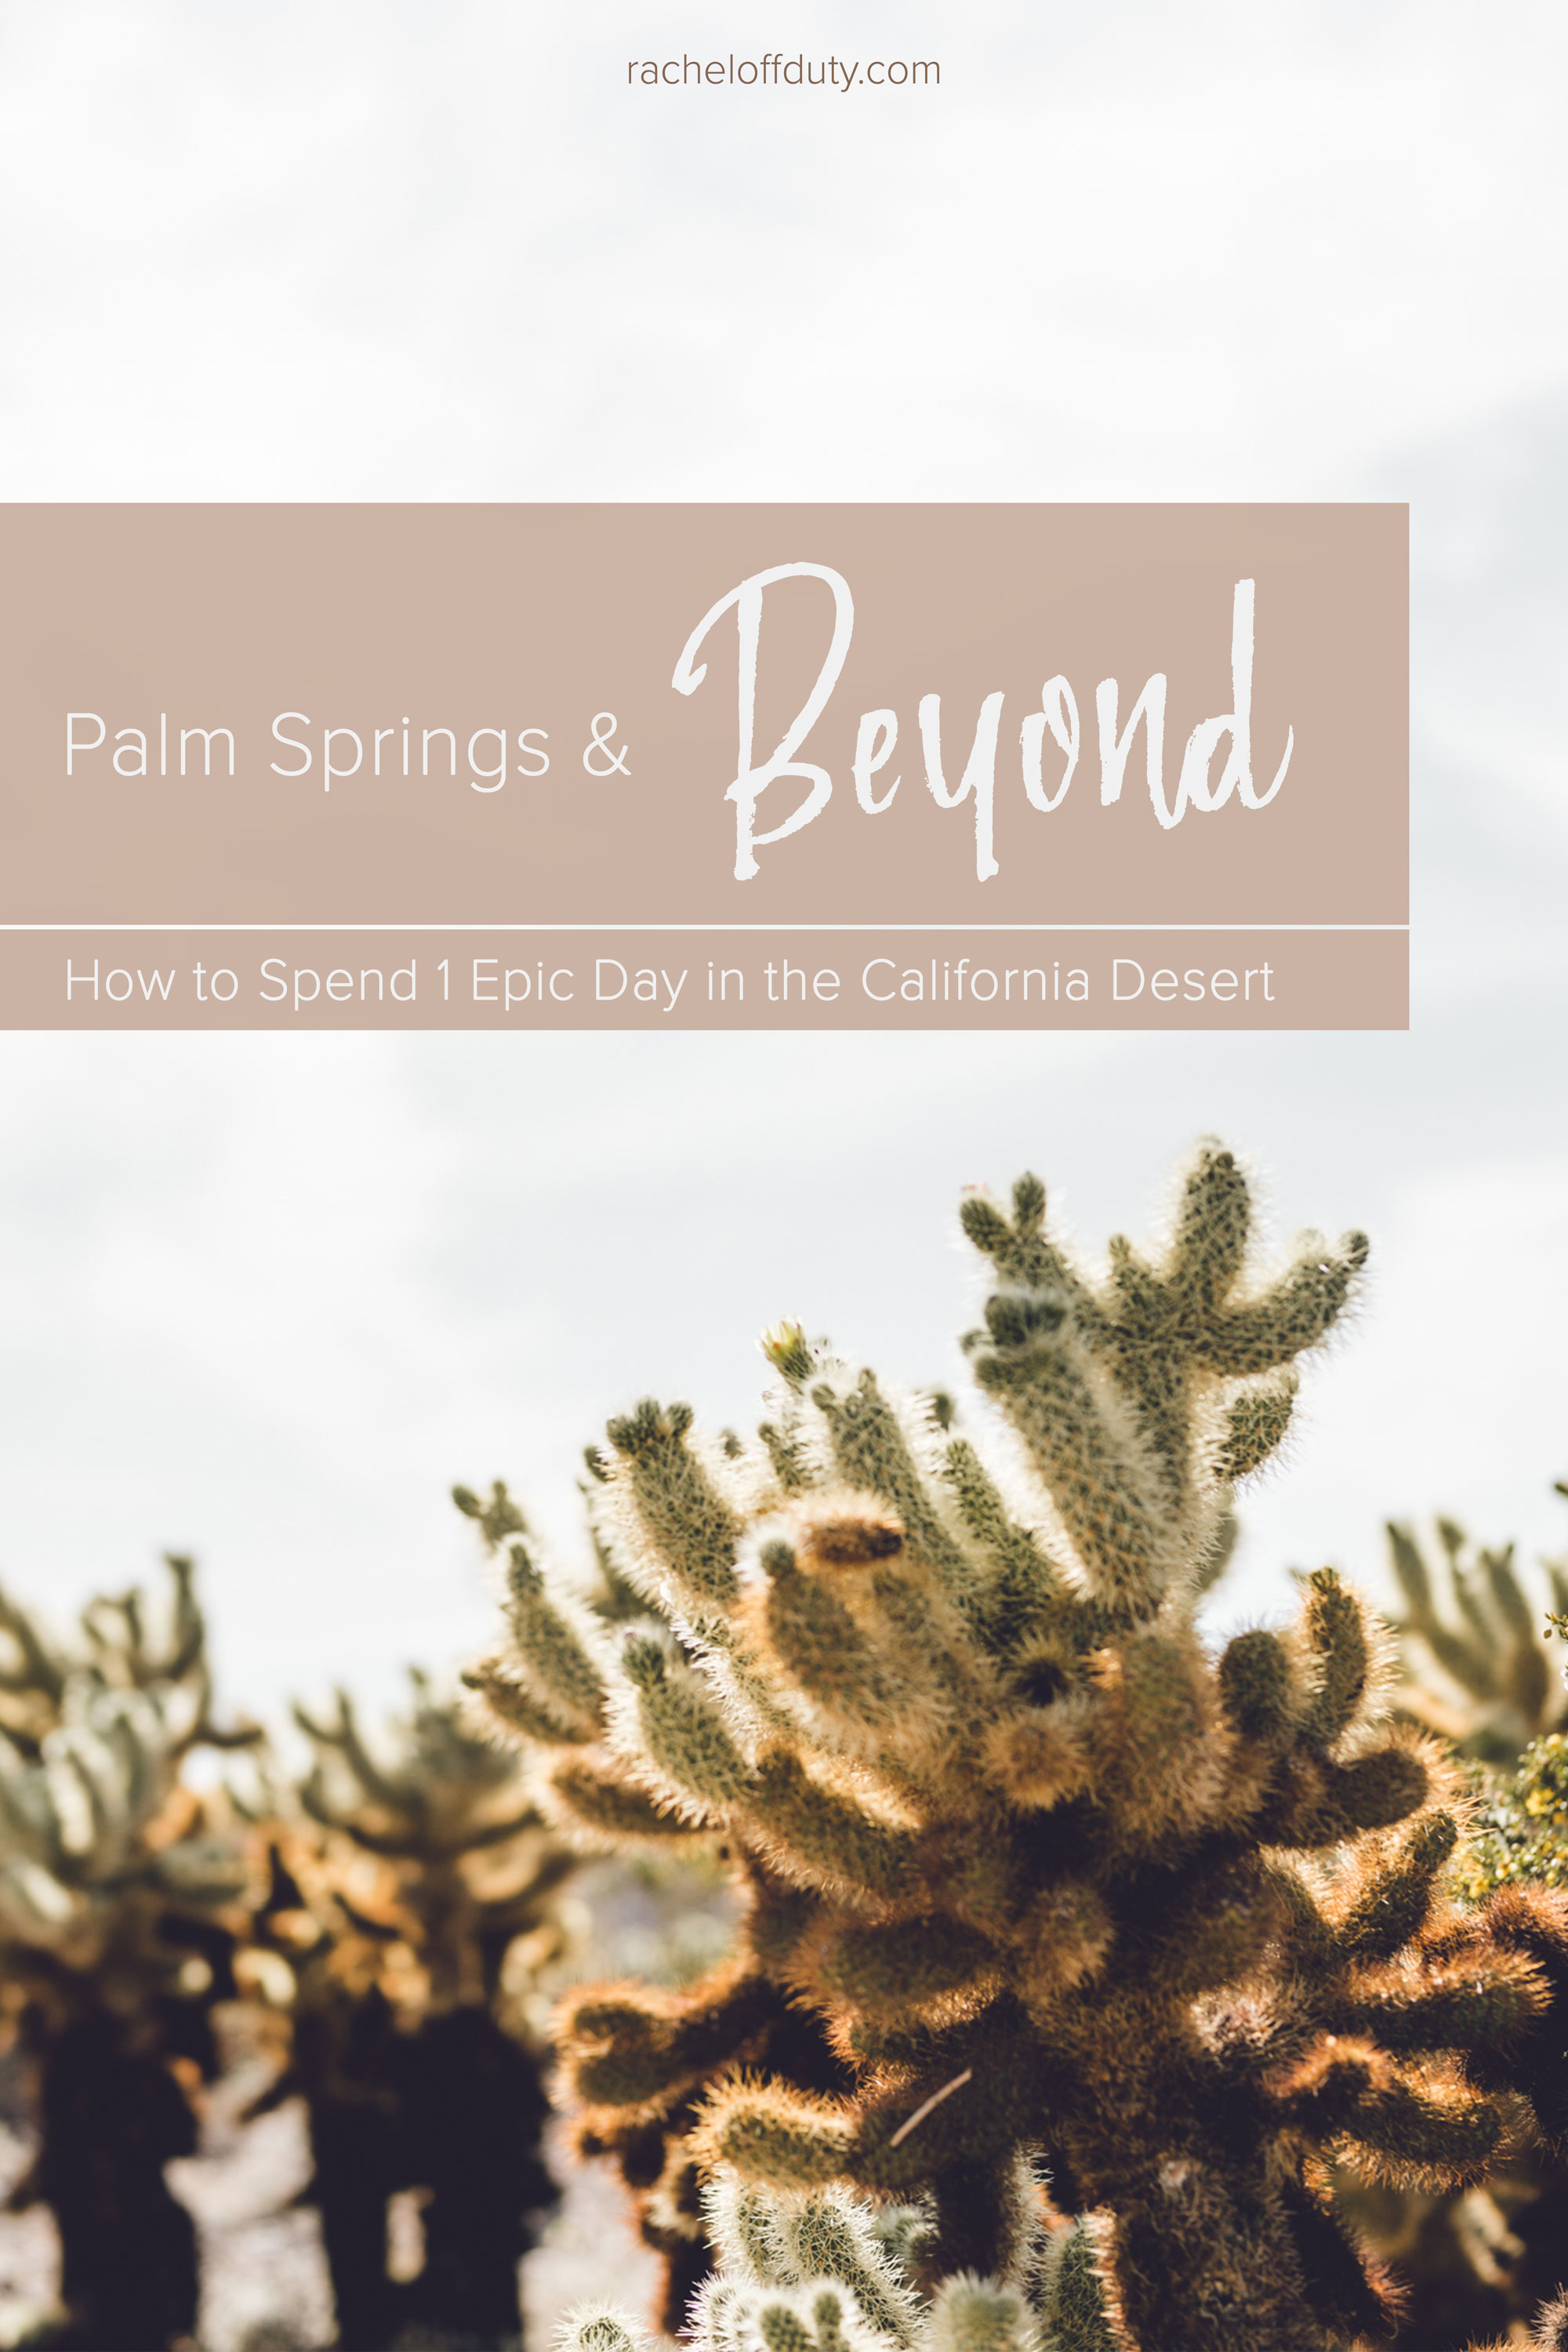 Rachel Off Duty: Beyond Palm Springs – How to Spend 1 Epic Day in the California Desert